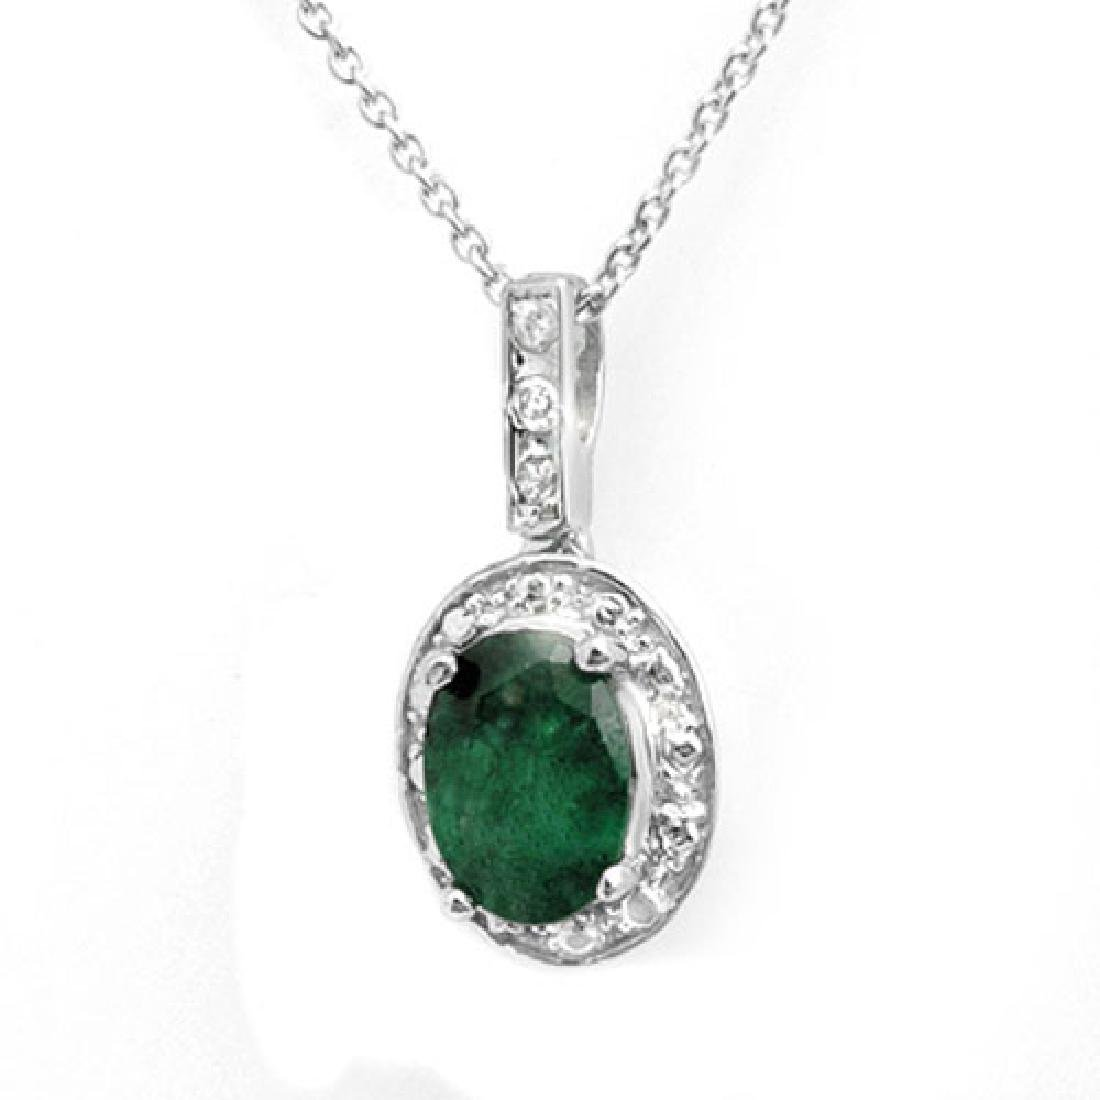 1.02 CTW Emerald & Diamond Pendant 14K White Gold